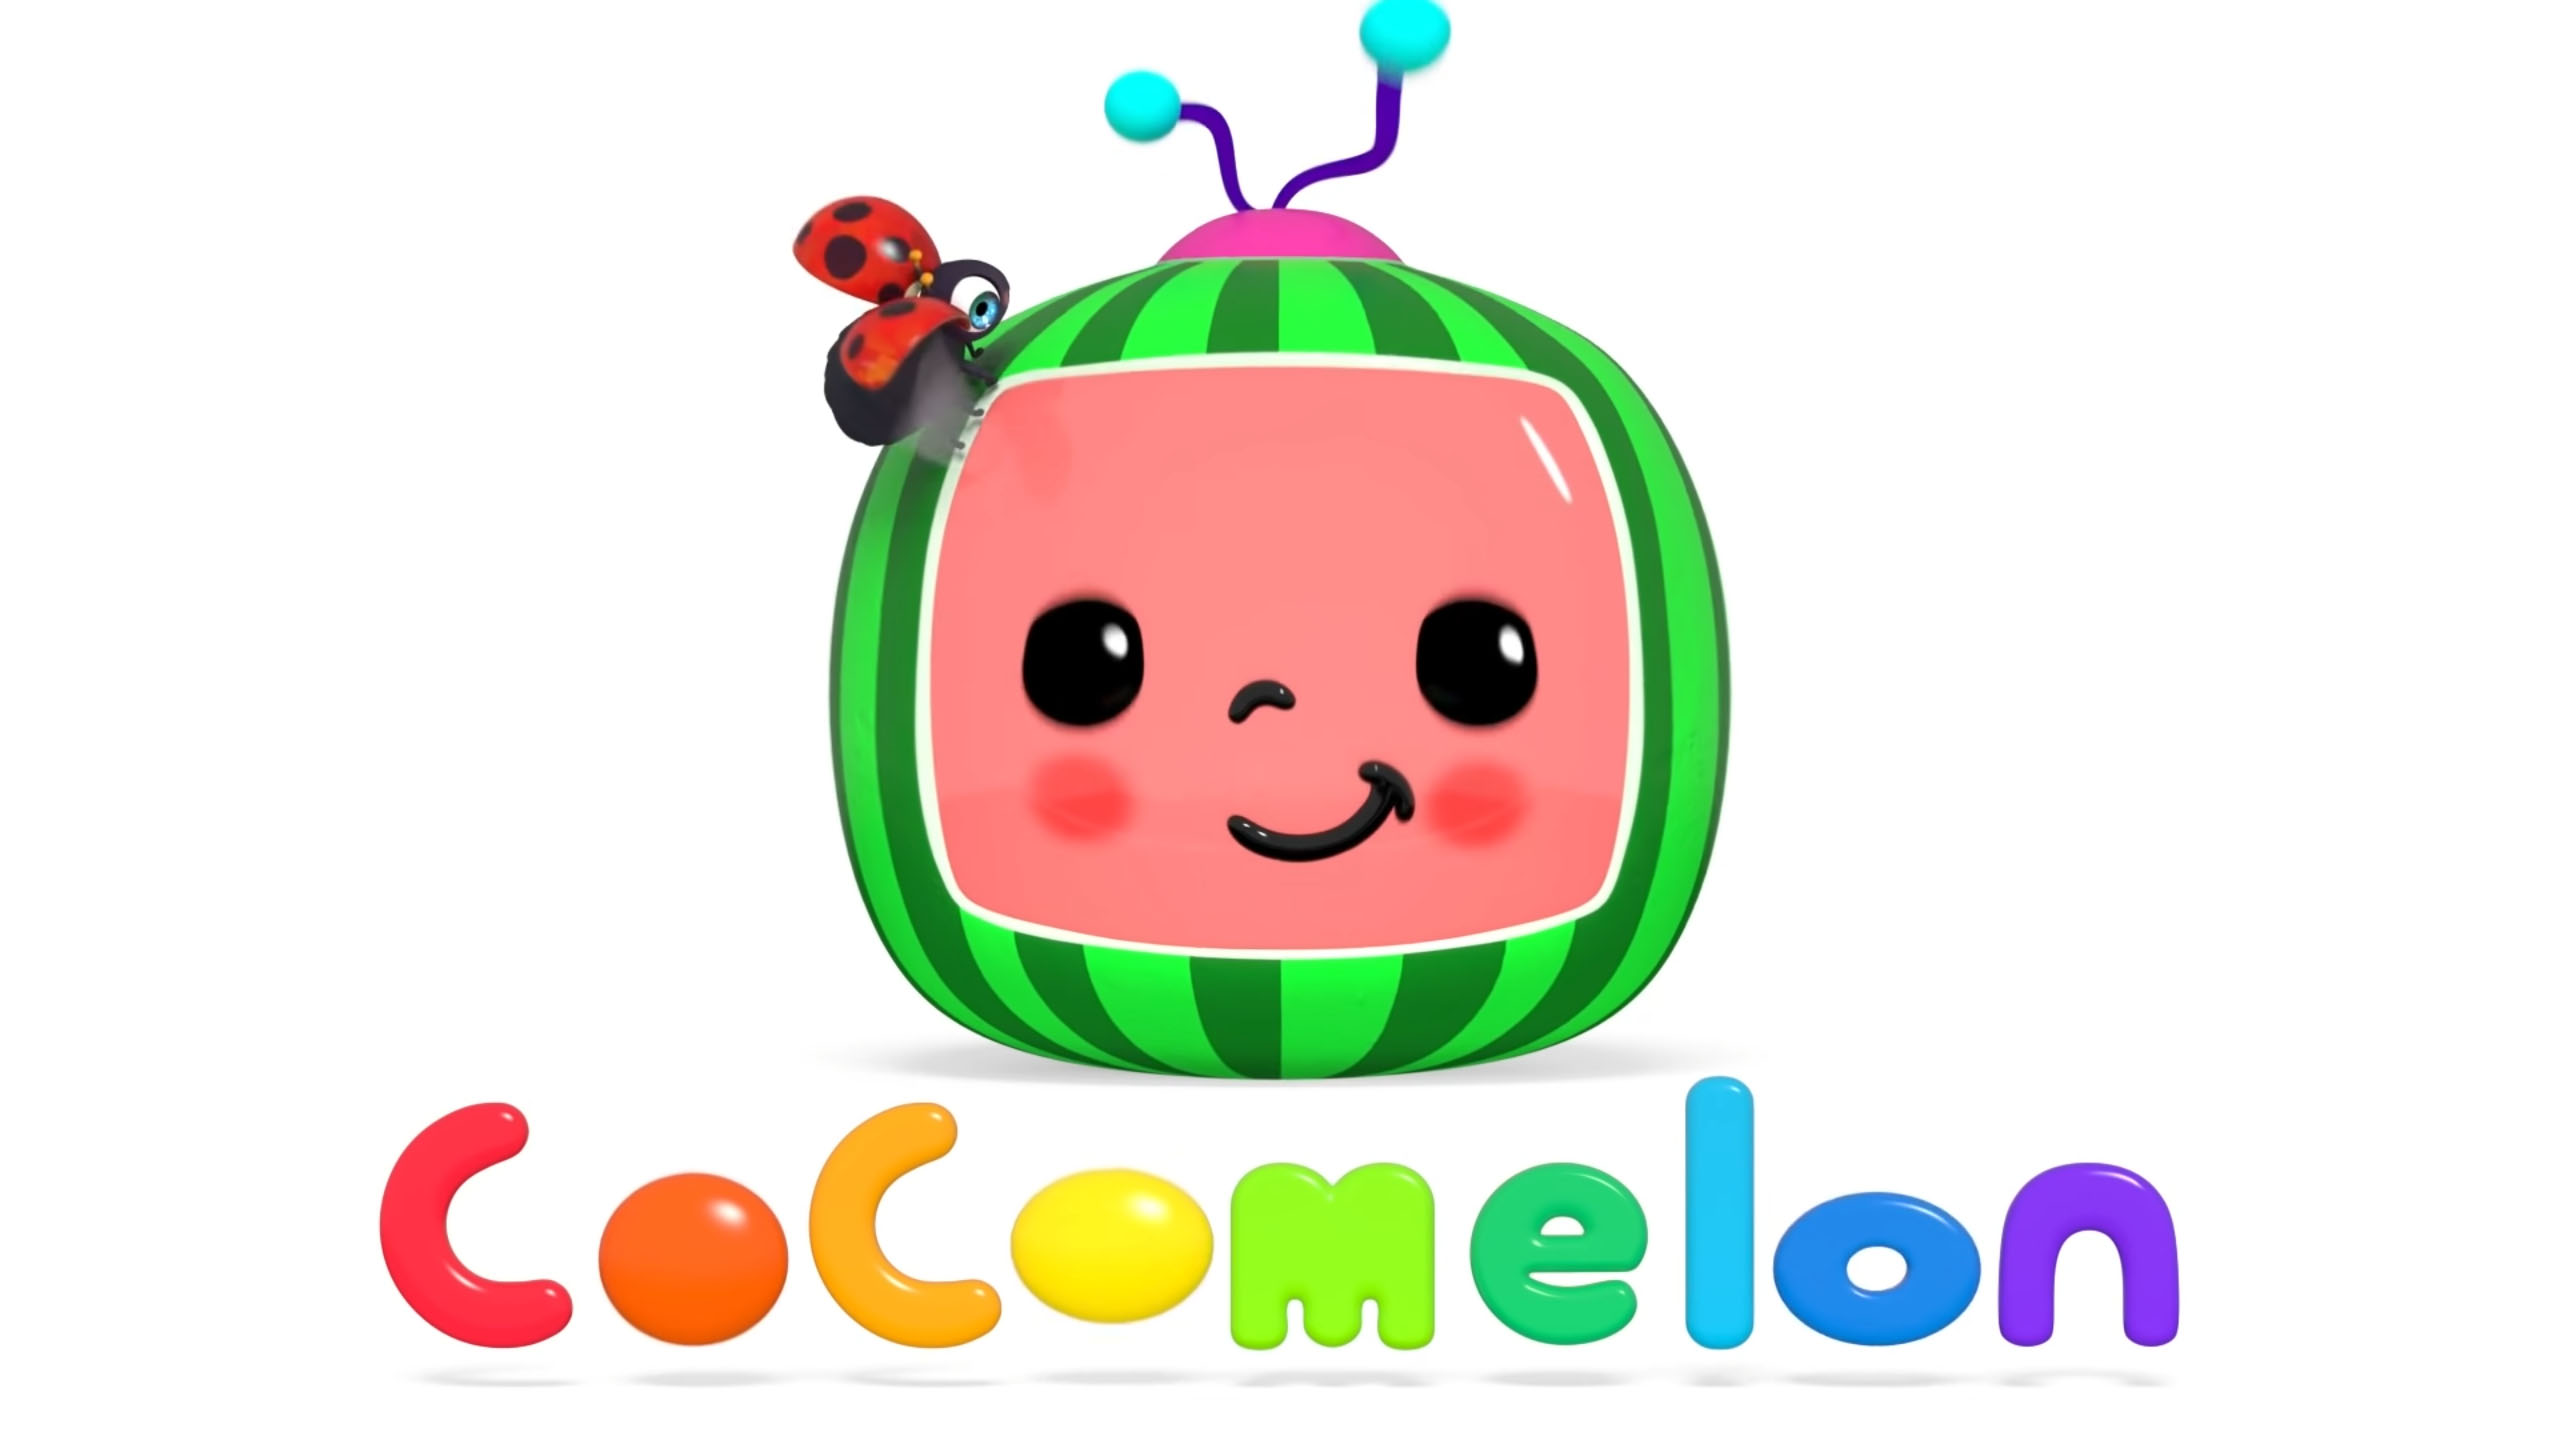 Cocomelon is famous for children's nursery rhymes